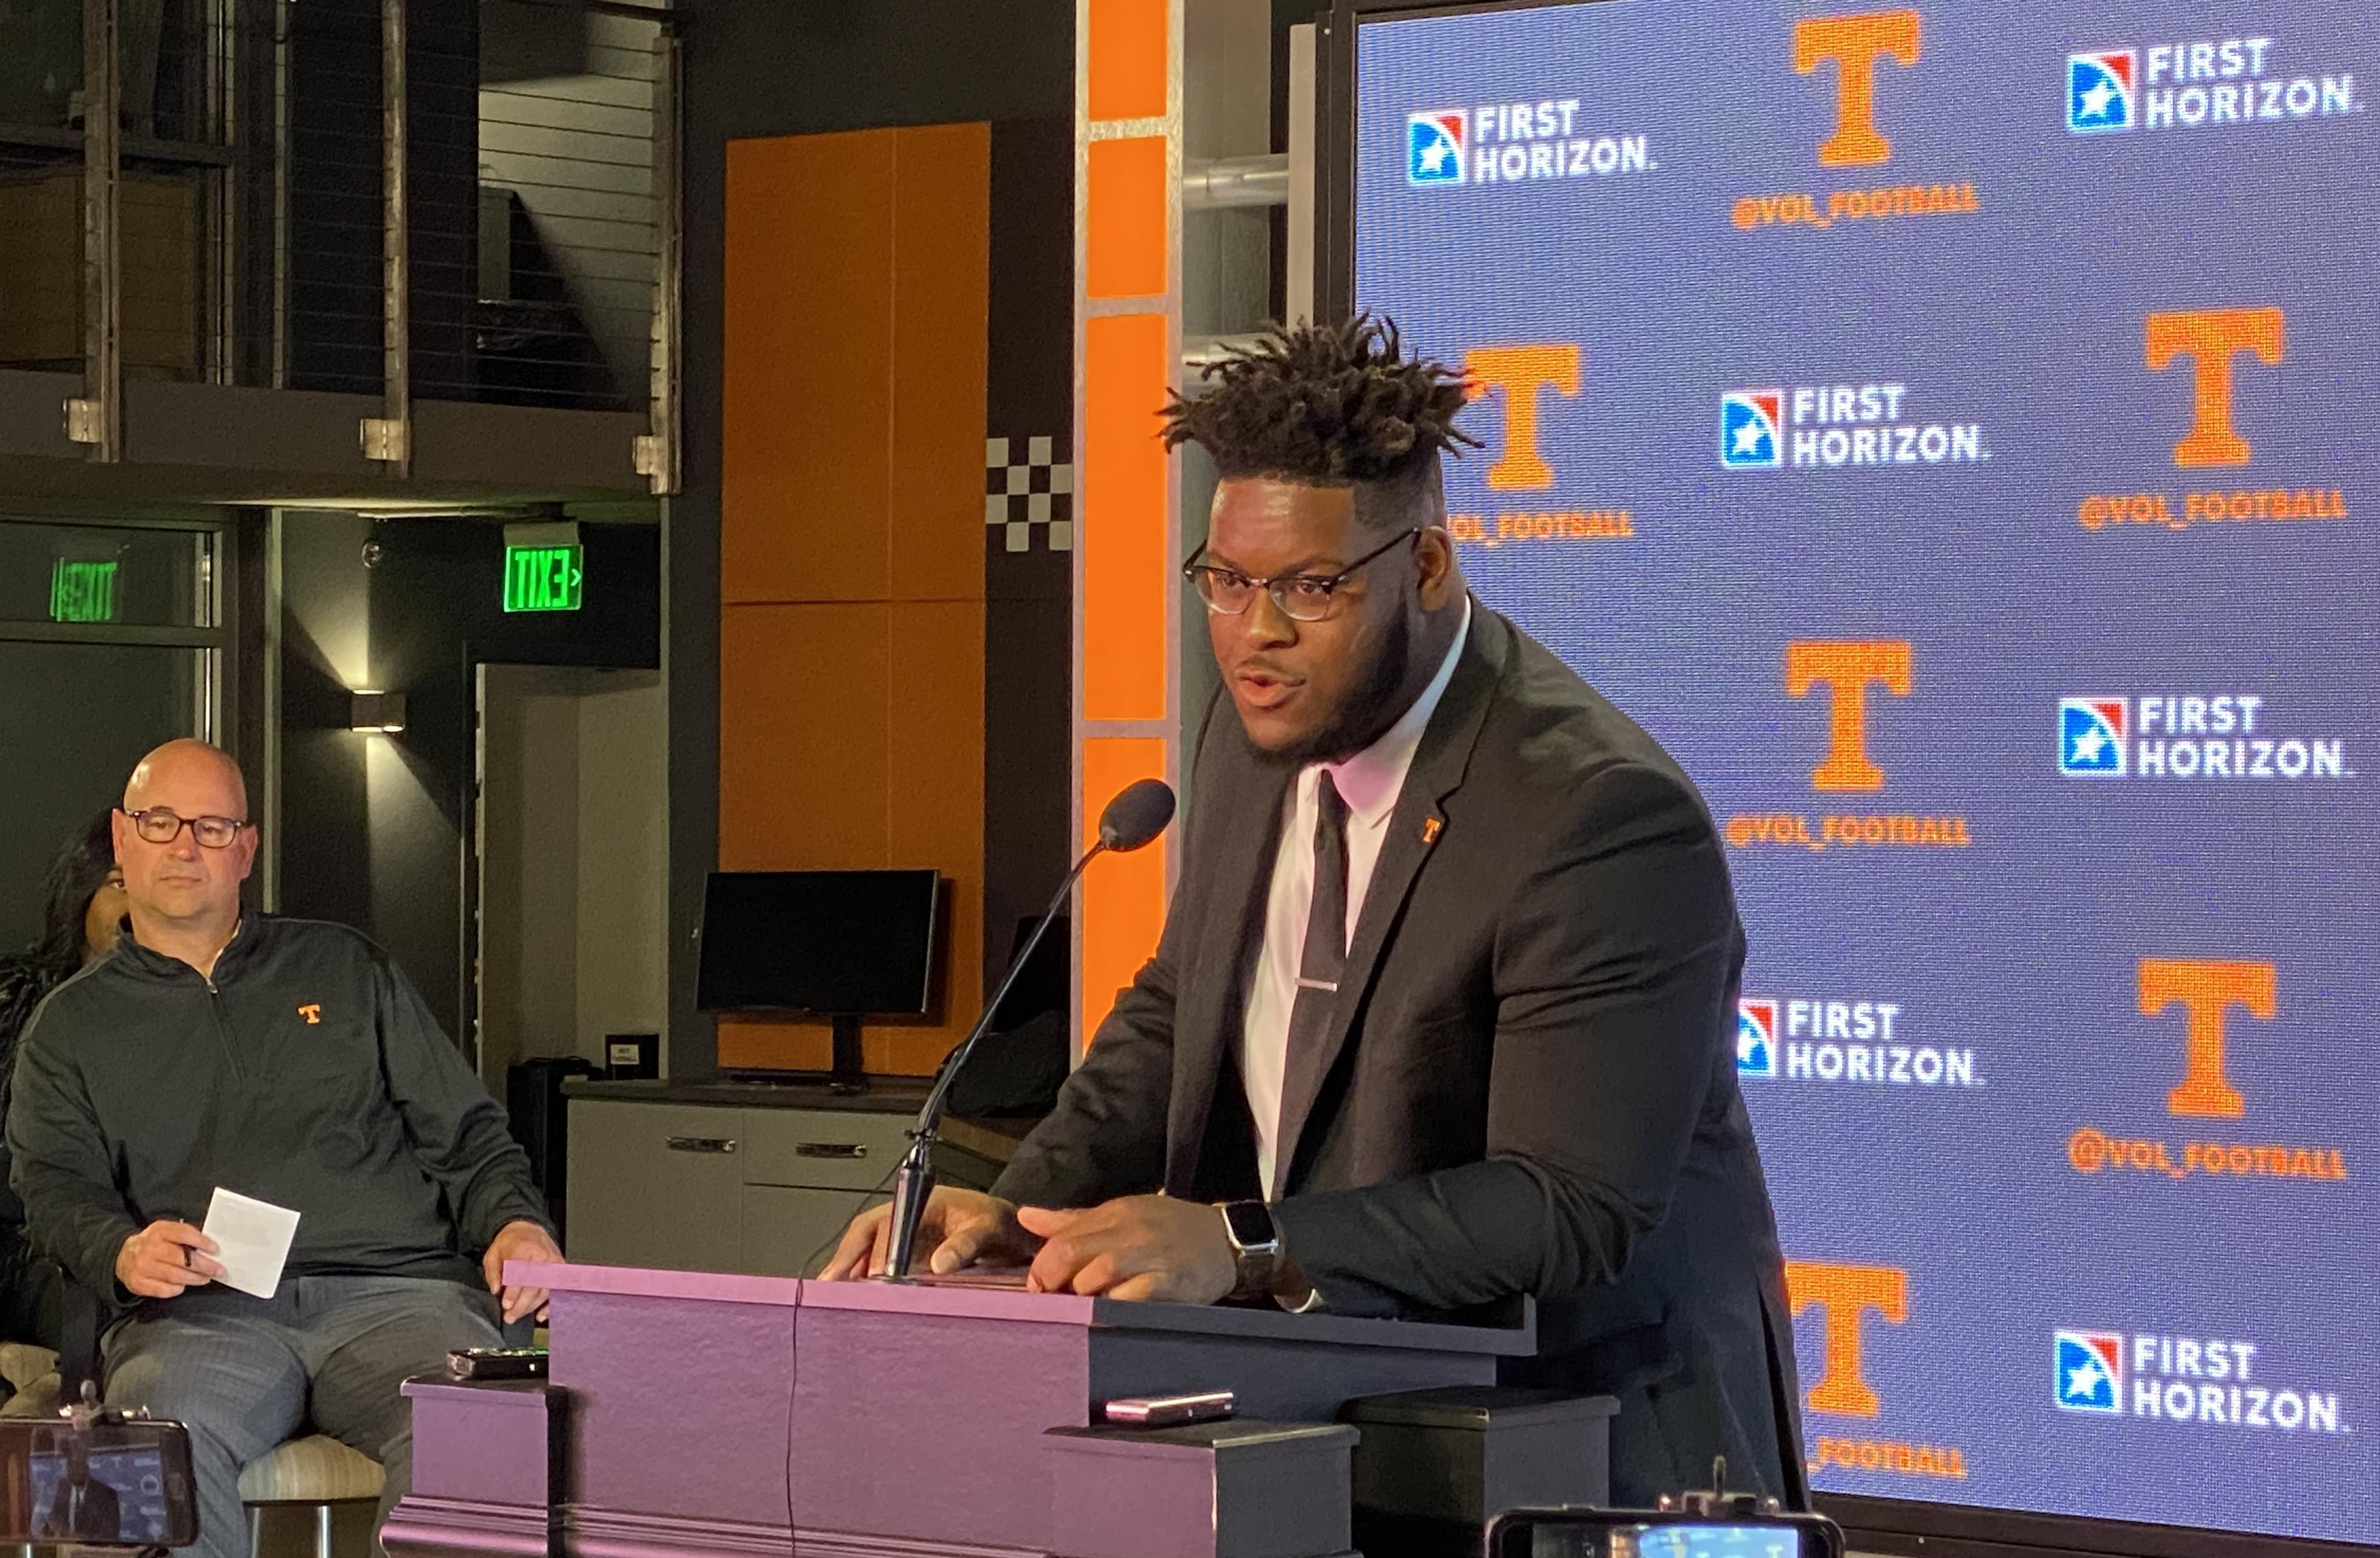 Trey Smith announces he will return to the Vols